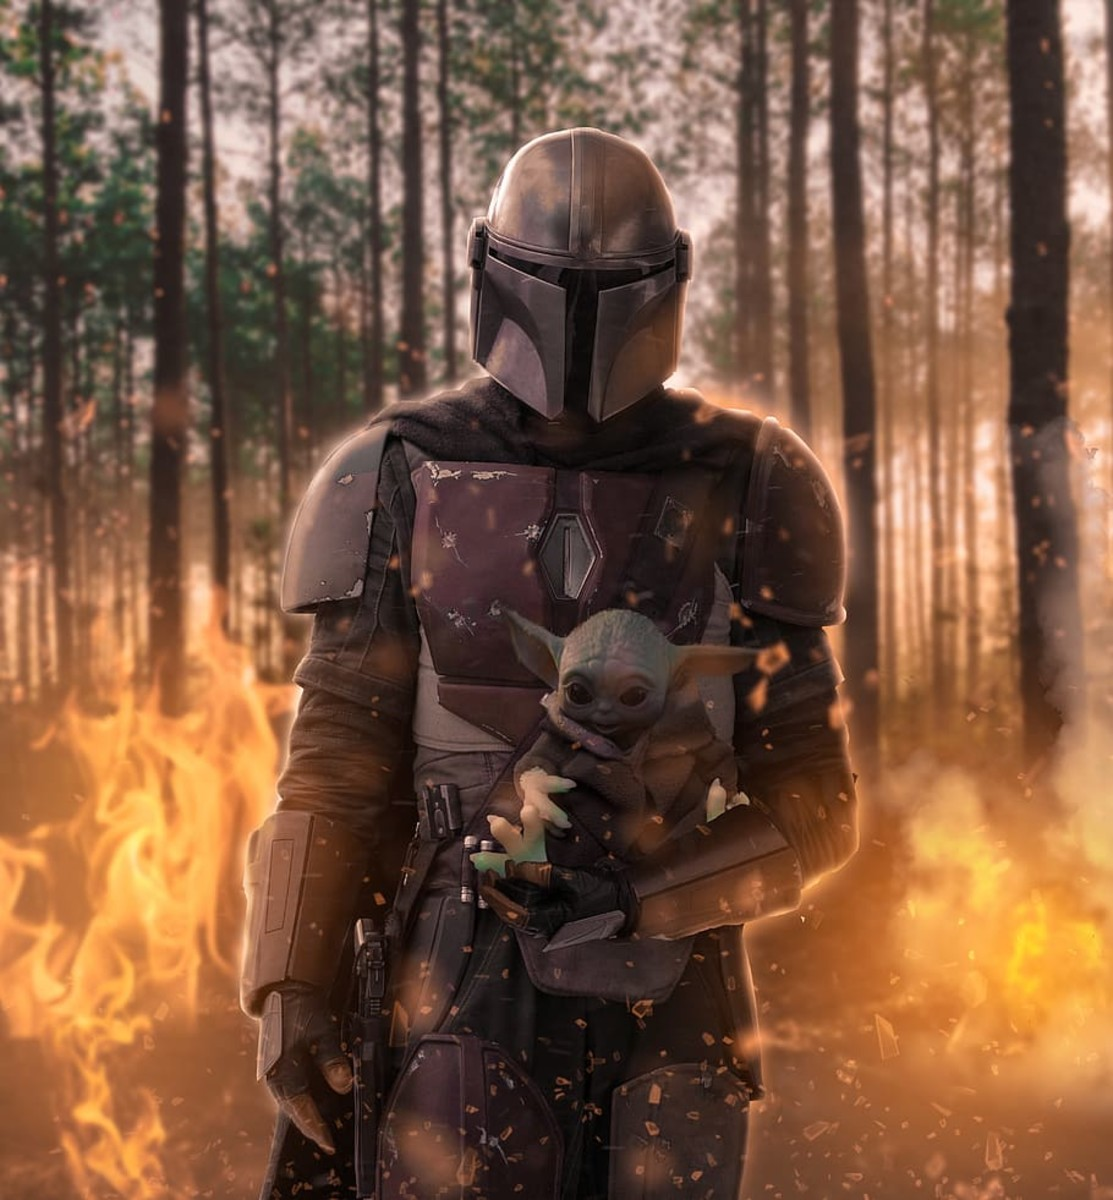 The Mandalorian and his adopted son, Grogu.